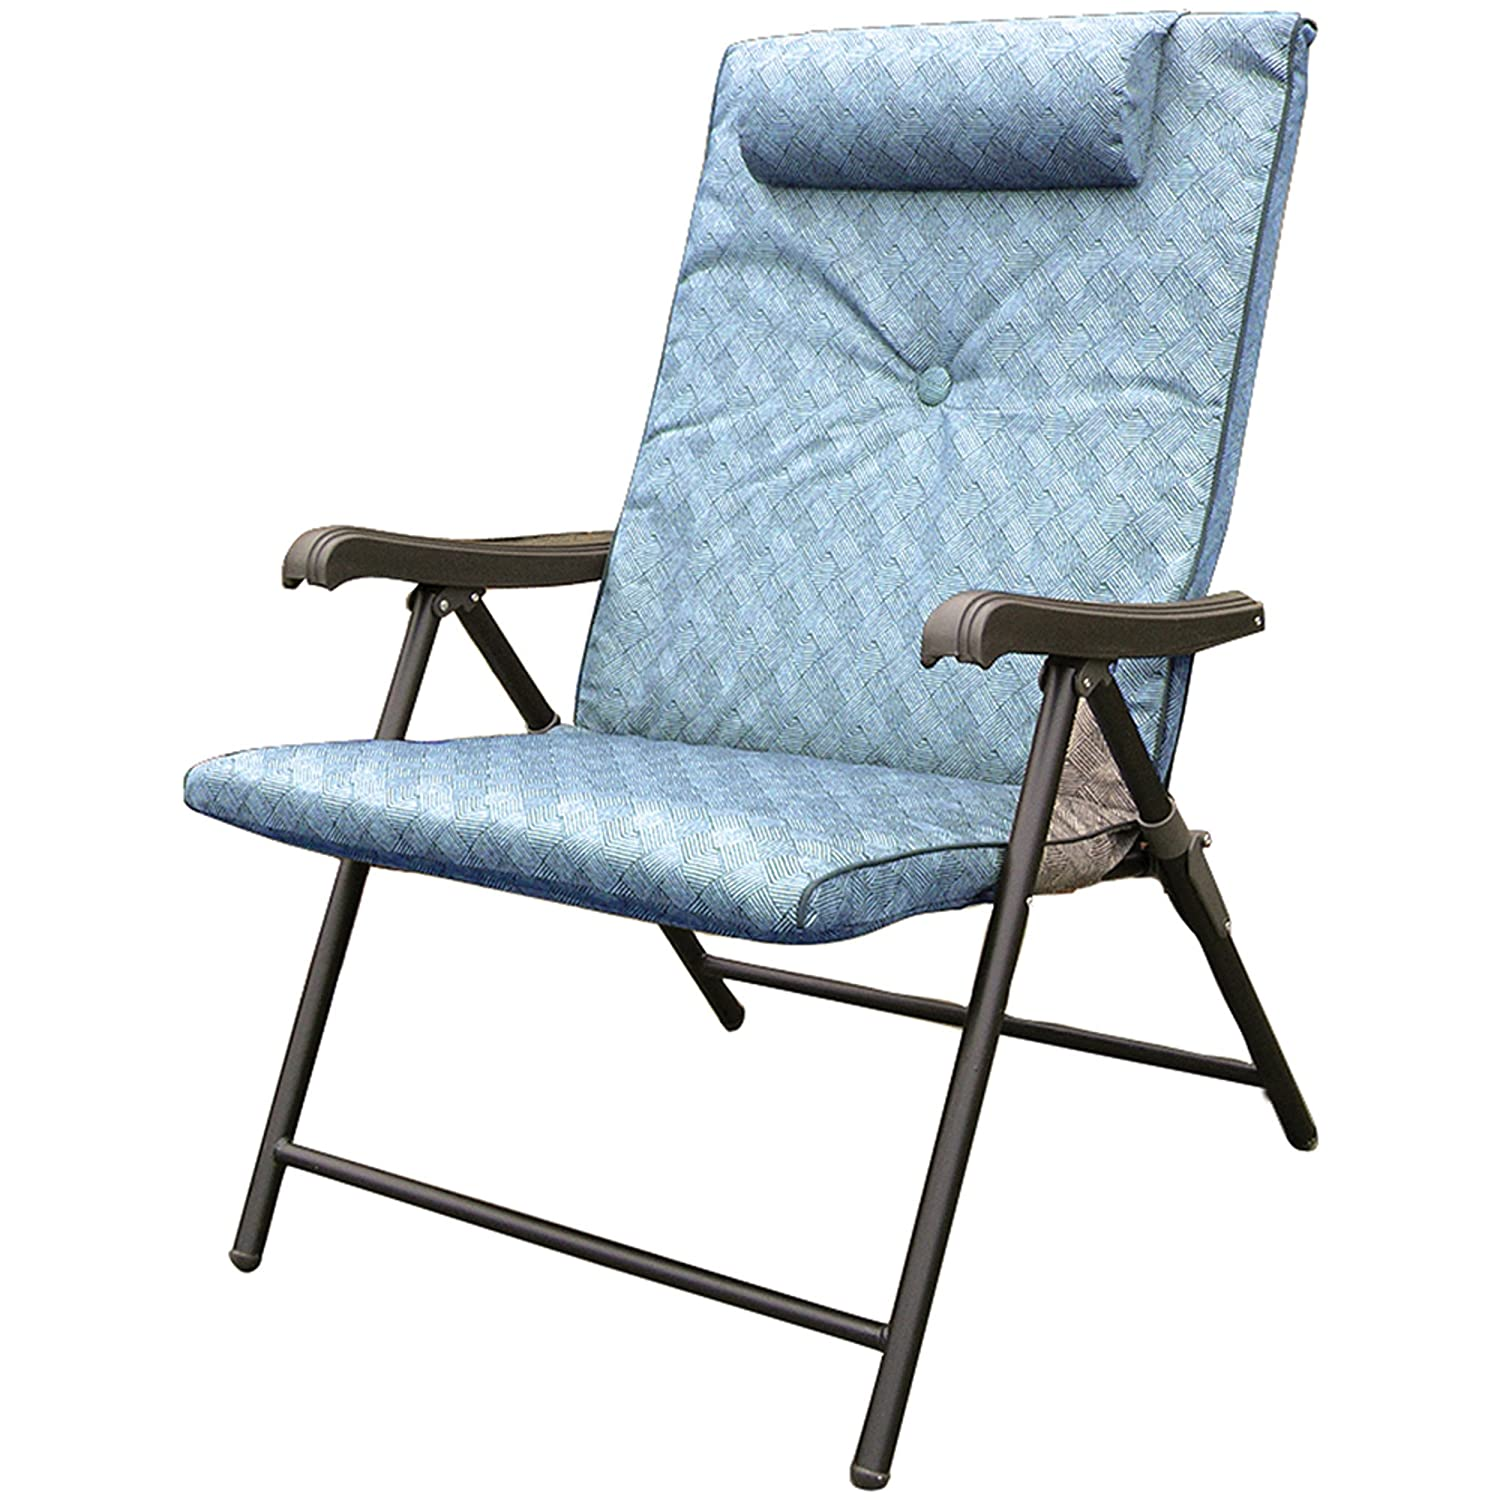 Delicieux Amazon.com: Prime Products 13 3372 Blue Prime Plus Folding Chair  (120.1084): Automotive